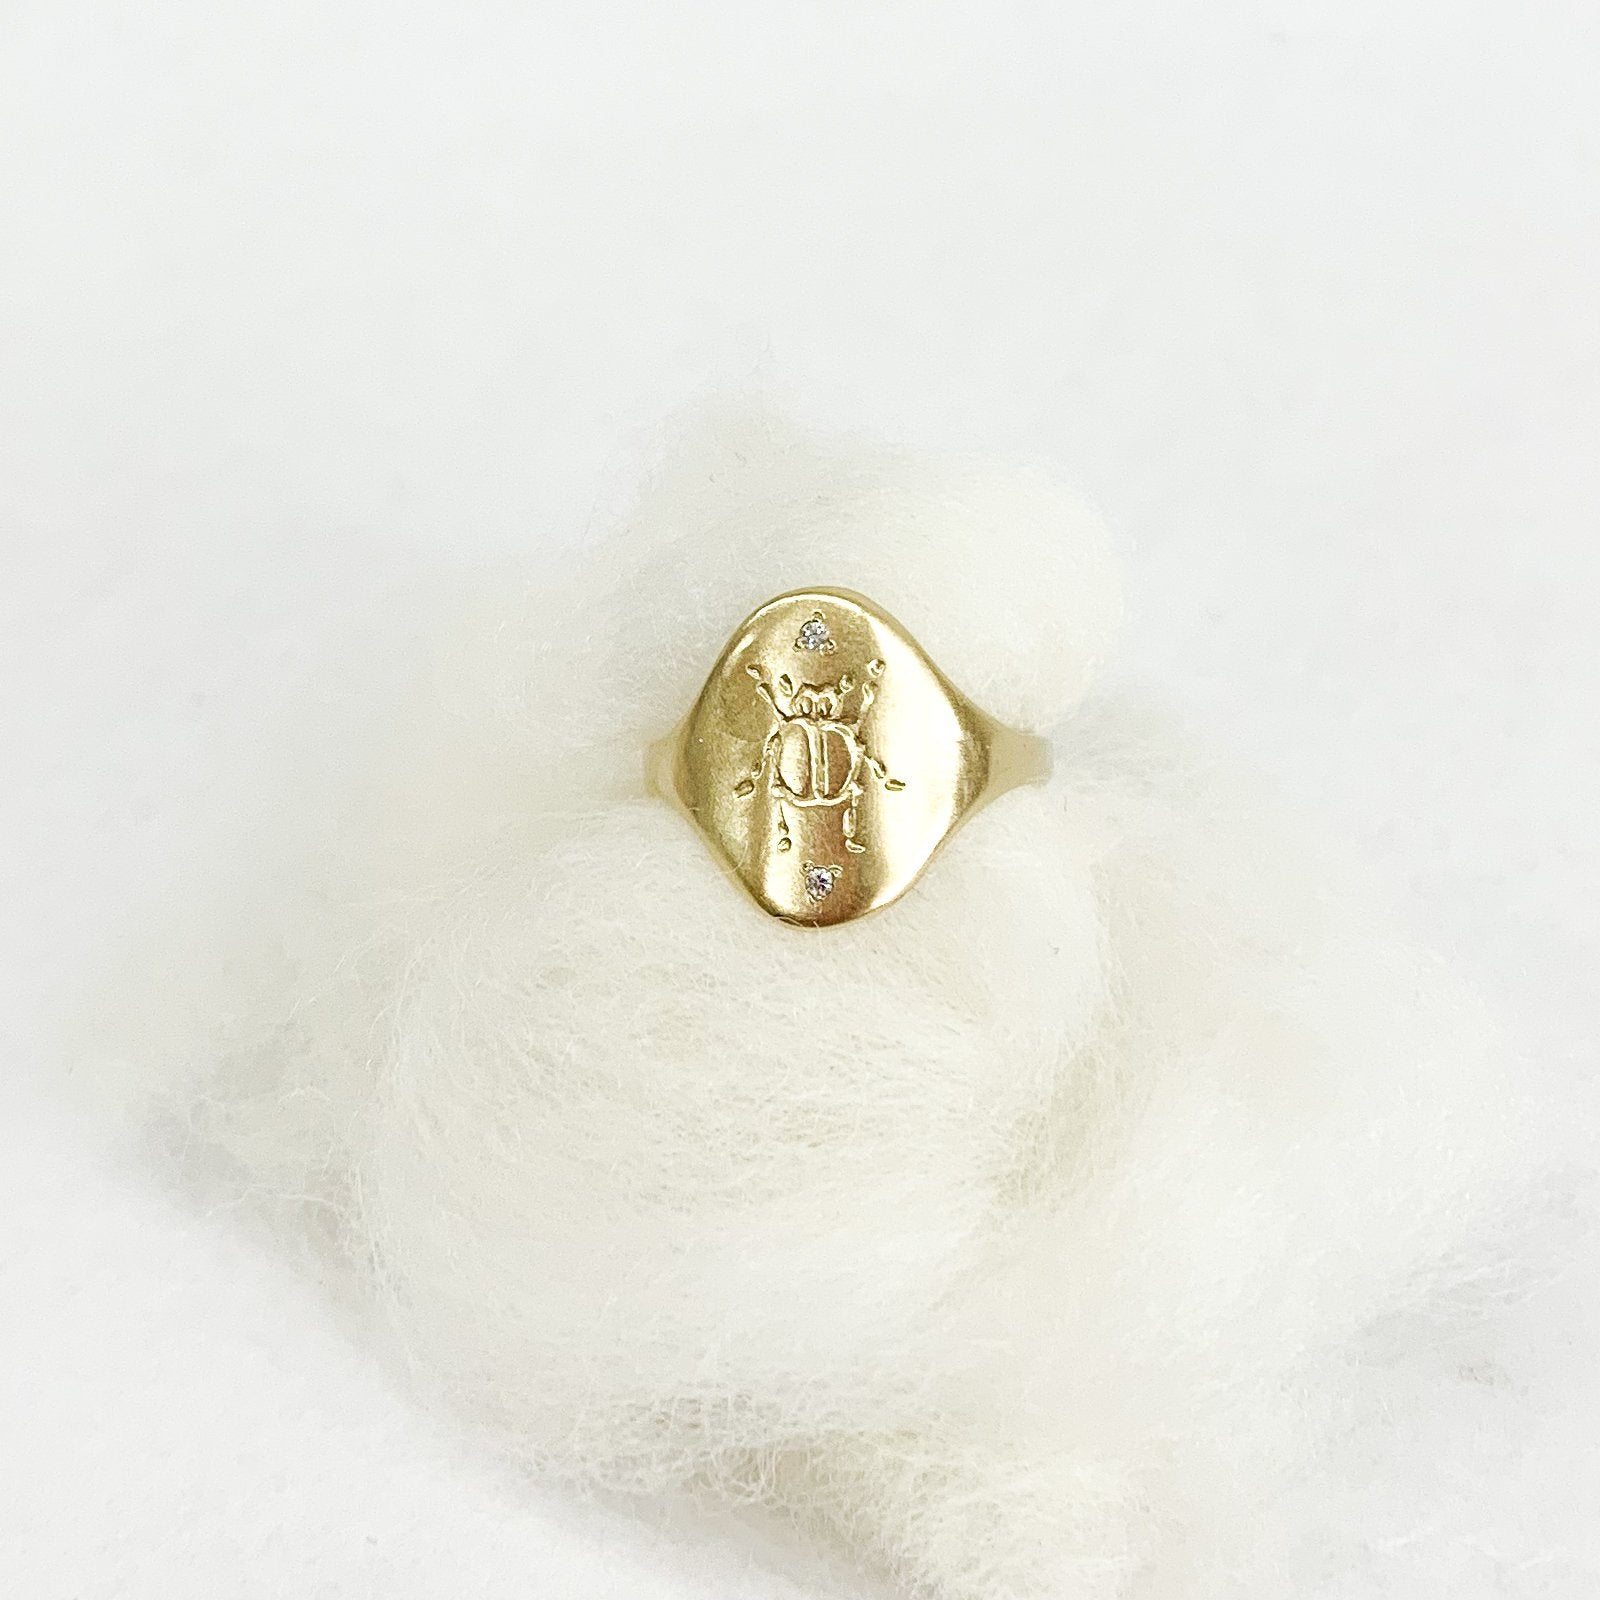 Black Barc Kogane - tortoise general store, beetle signet ring with diamonds by Mizuki Tsurtaka, 14k yellow gold